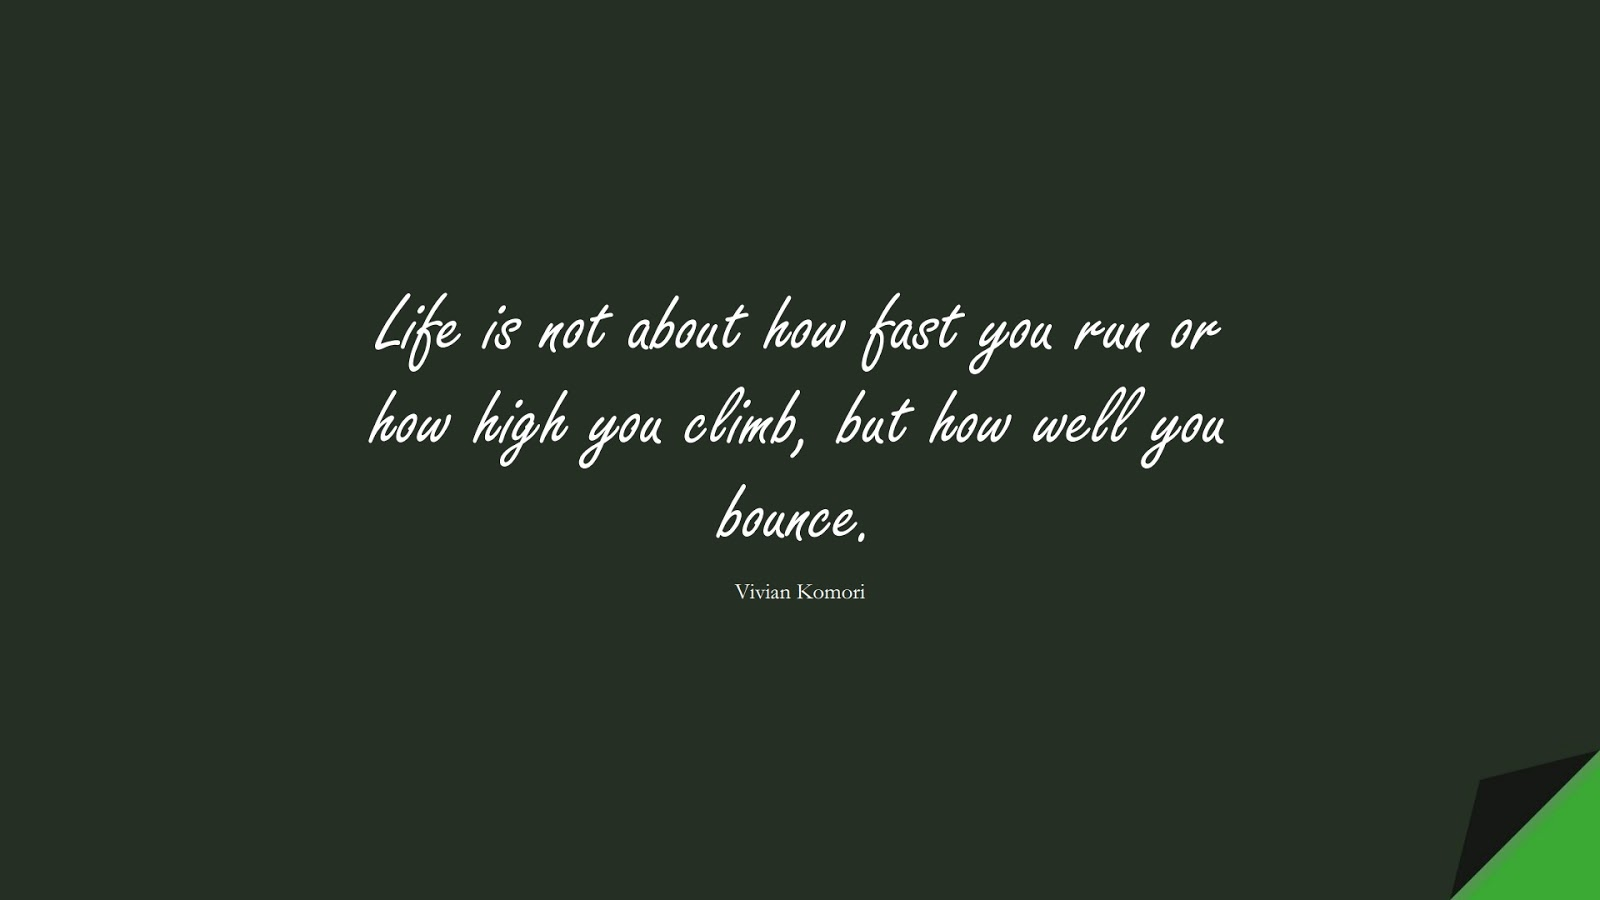 Life is not about how fast you run or how high you climb, but how well you bounce. (Vivian Komori);  #HappinessQuotes